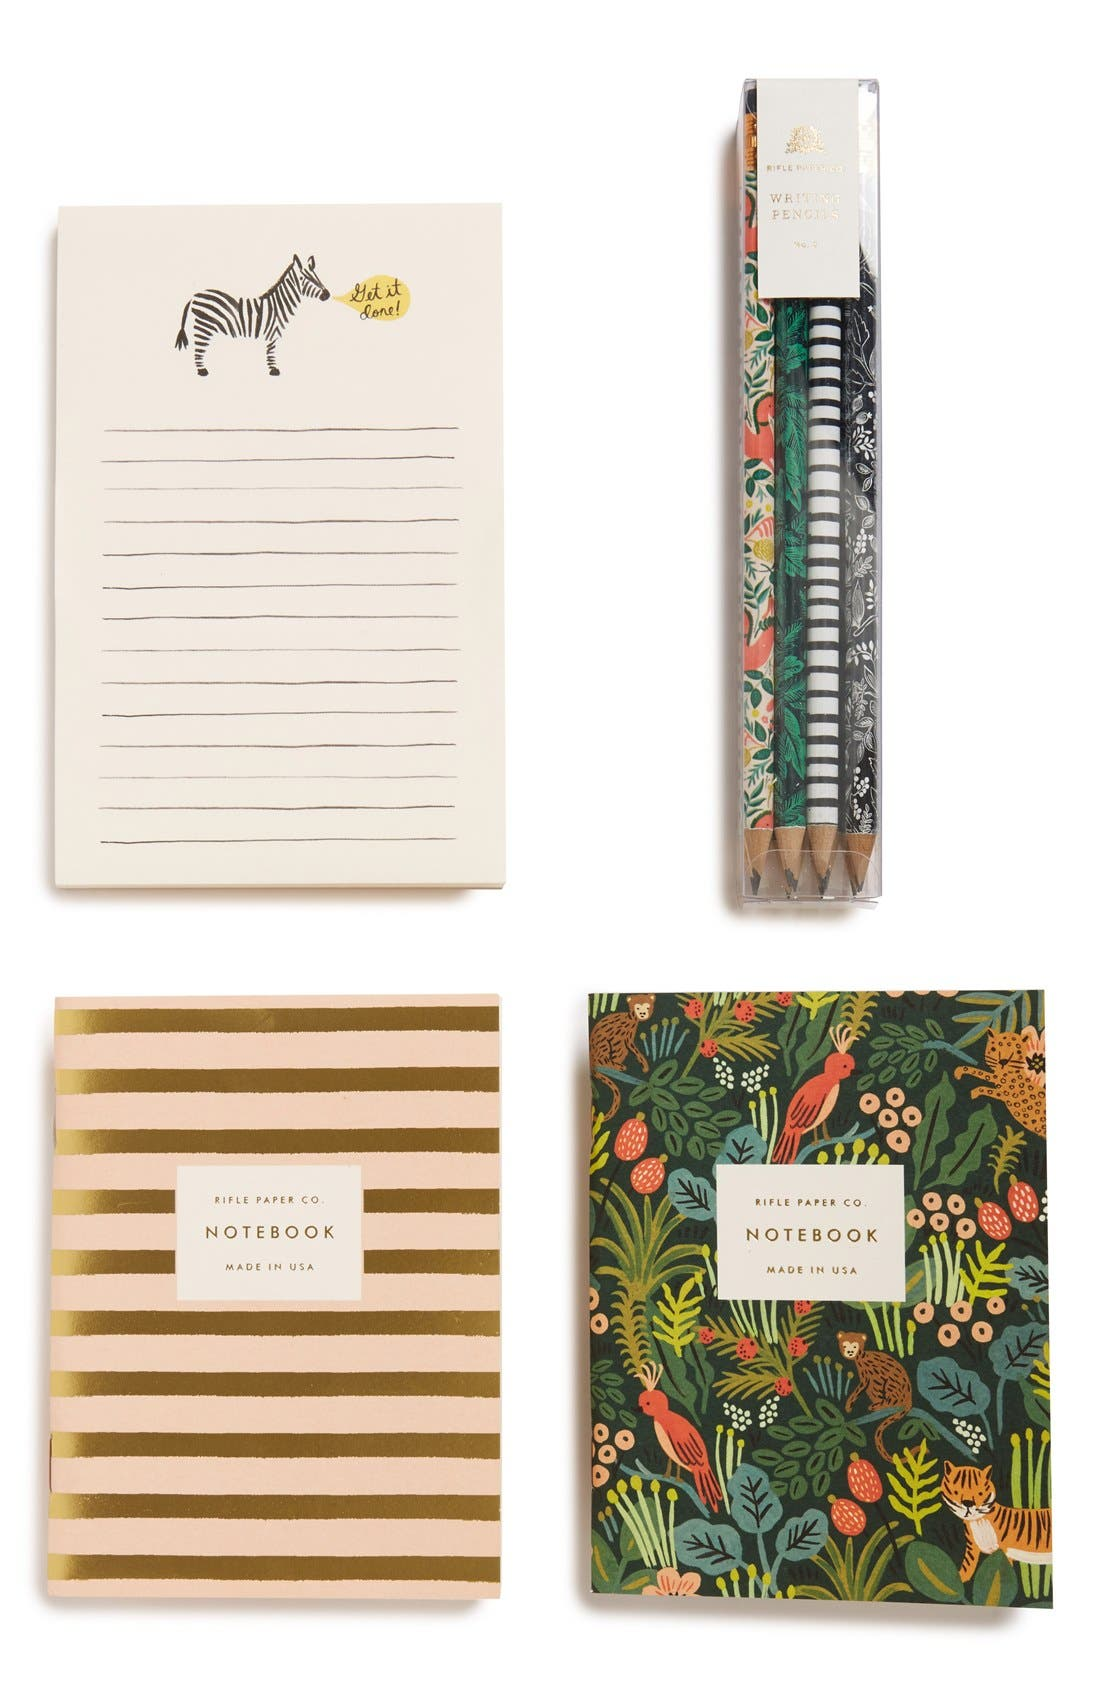 Main Image - Rifle Paper Co. Notebooks, Notepad & Pencil Set